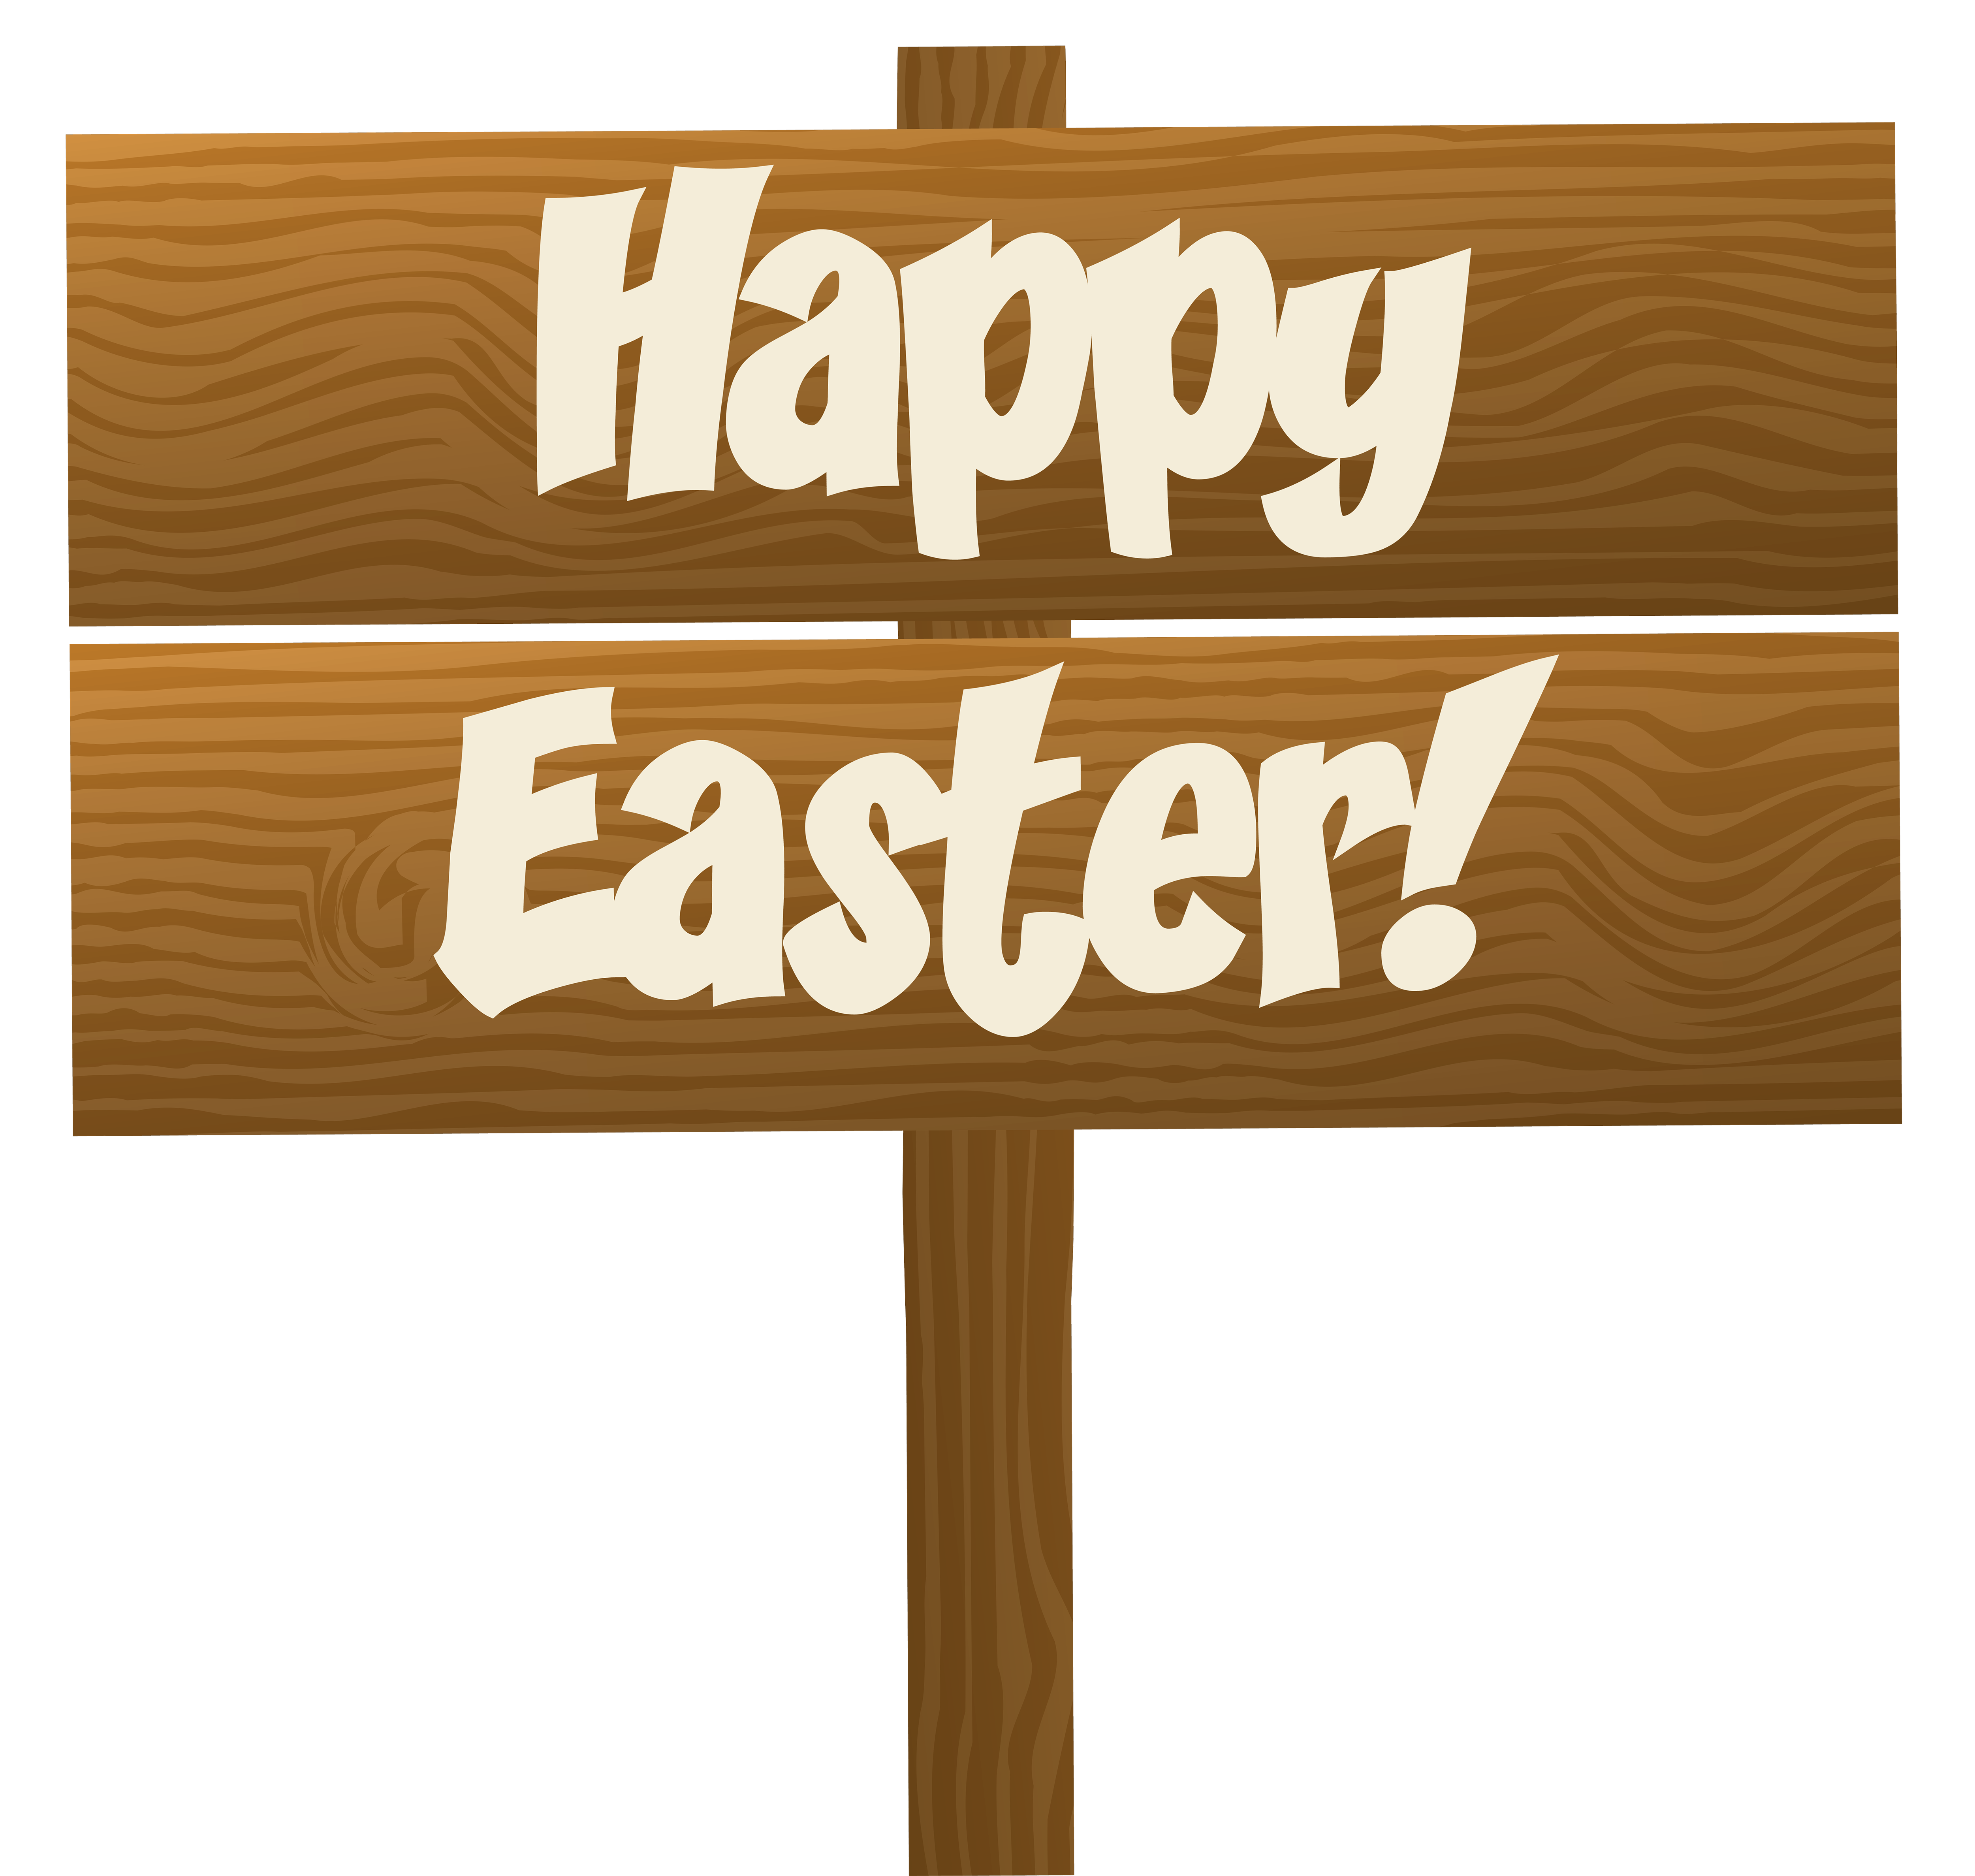 Happy Easter Wooden Sign Transparent Png Clip Art Image Happy Easter Sign Happy Easter Easter Signs